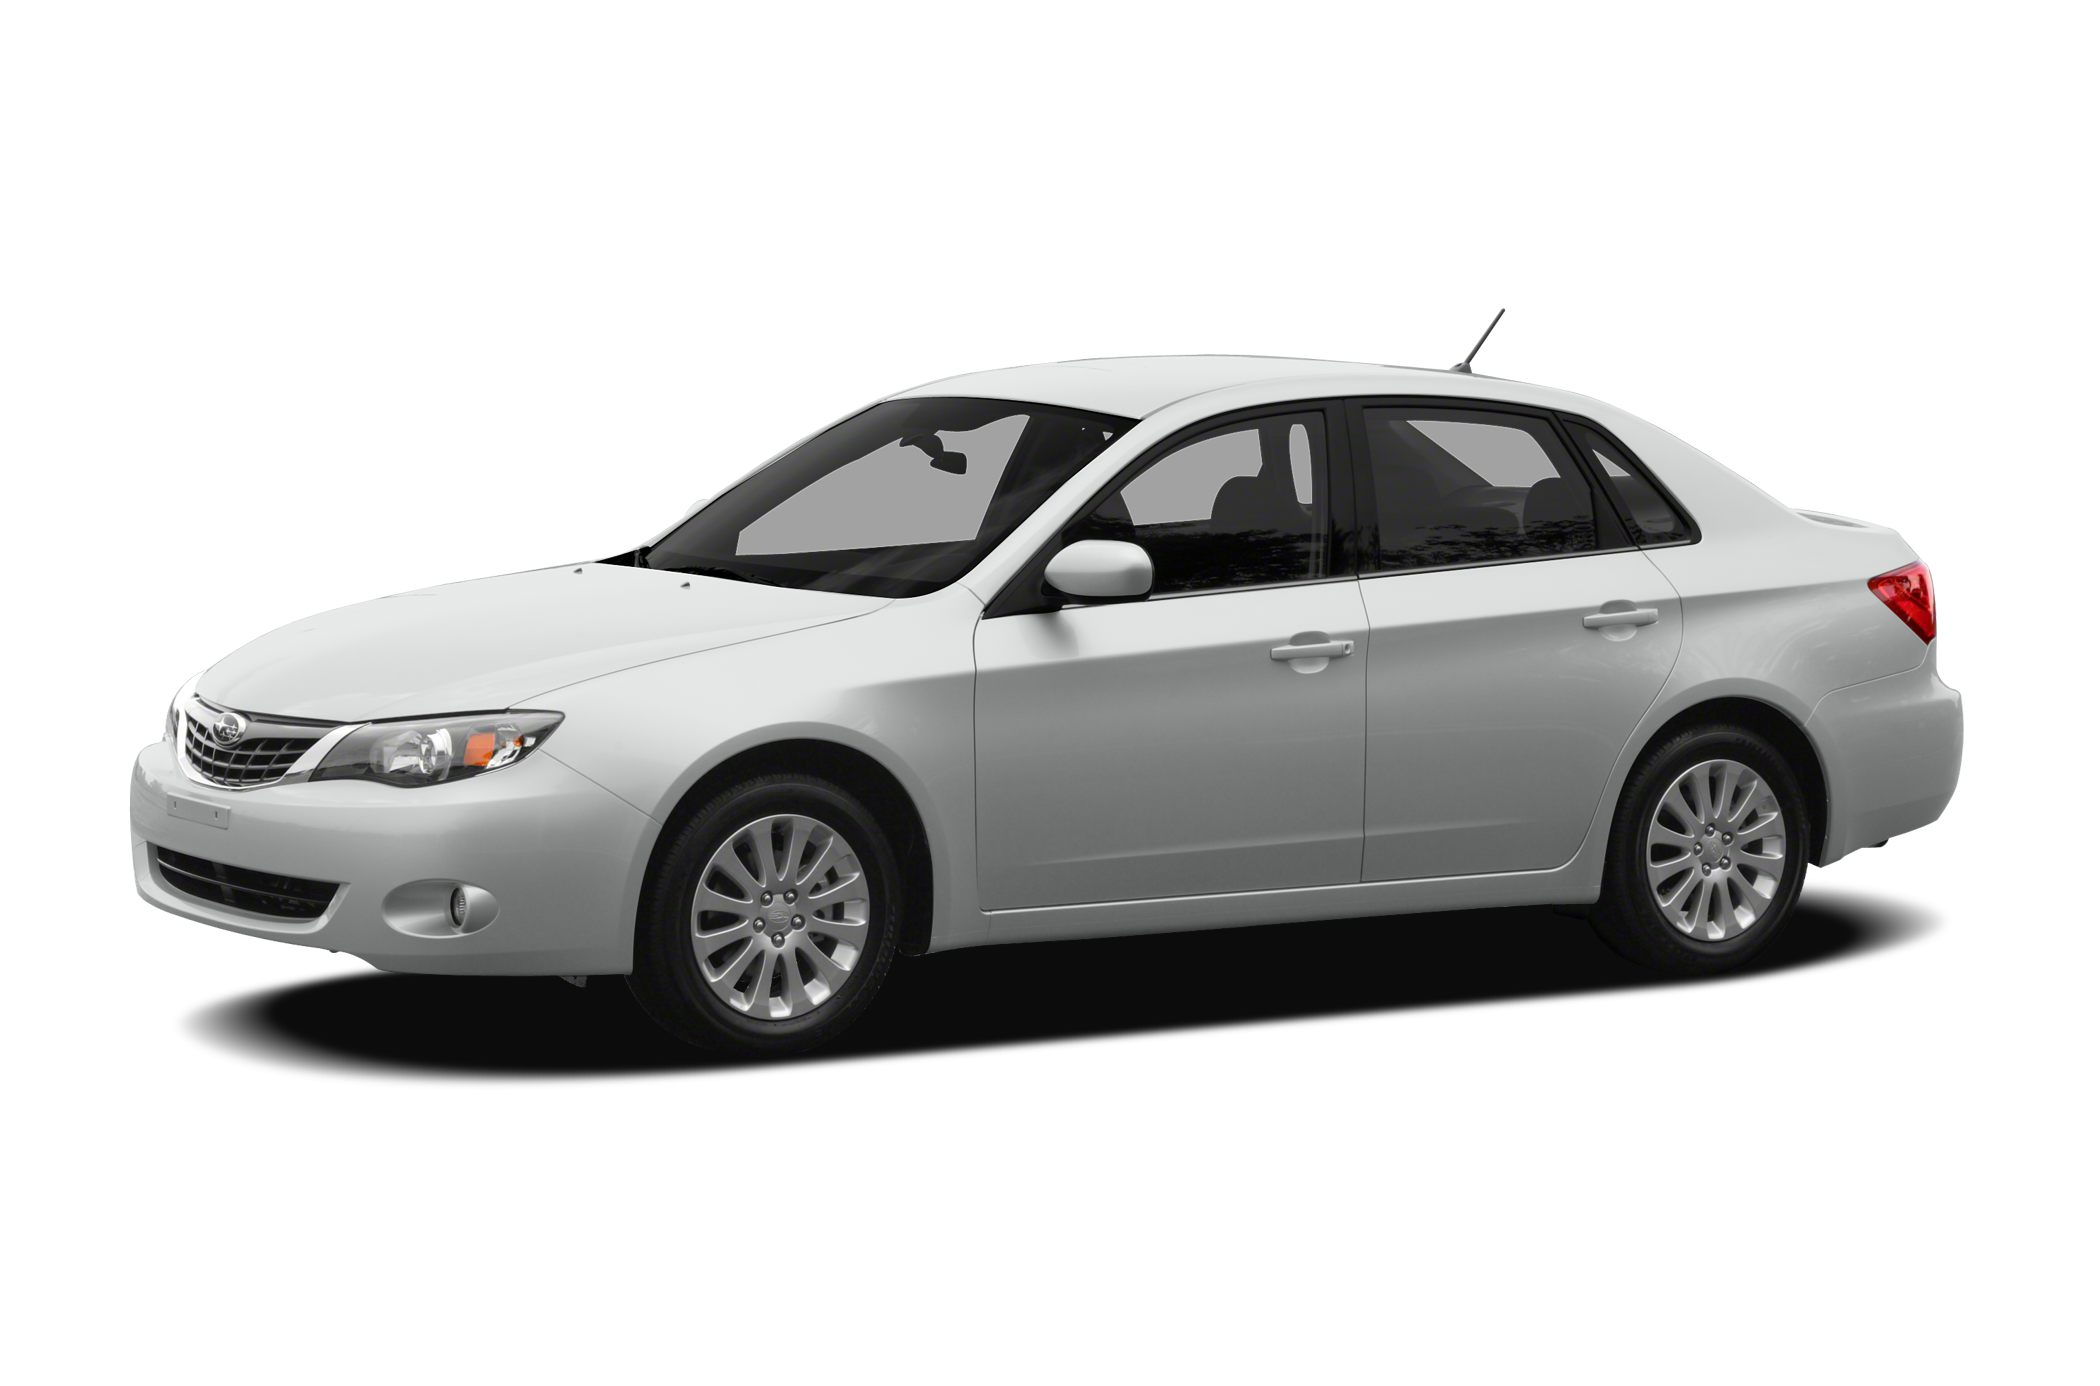 2011 Subaru Impreza 25i 25i trim ONLY 31449 Miles CD Player All Wheel Drive Head Airbag The